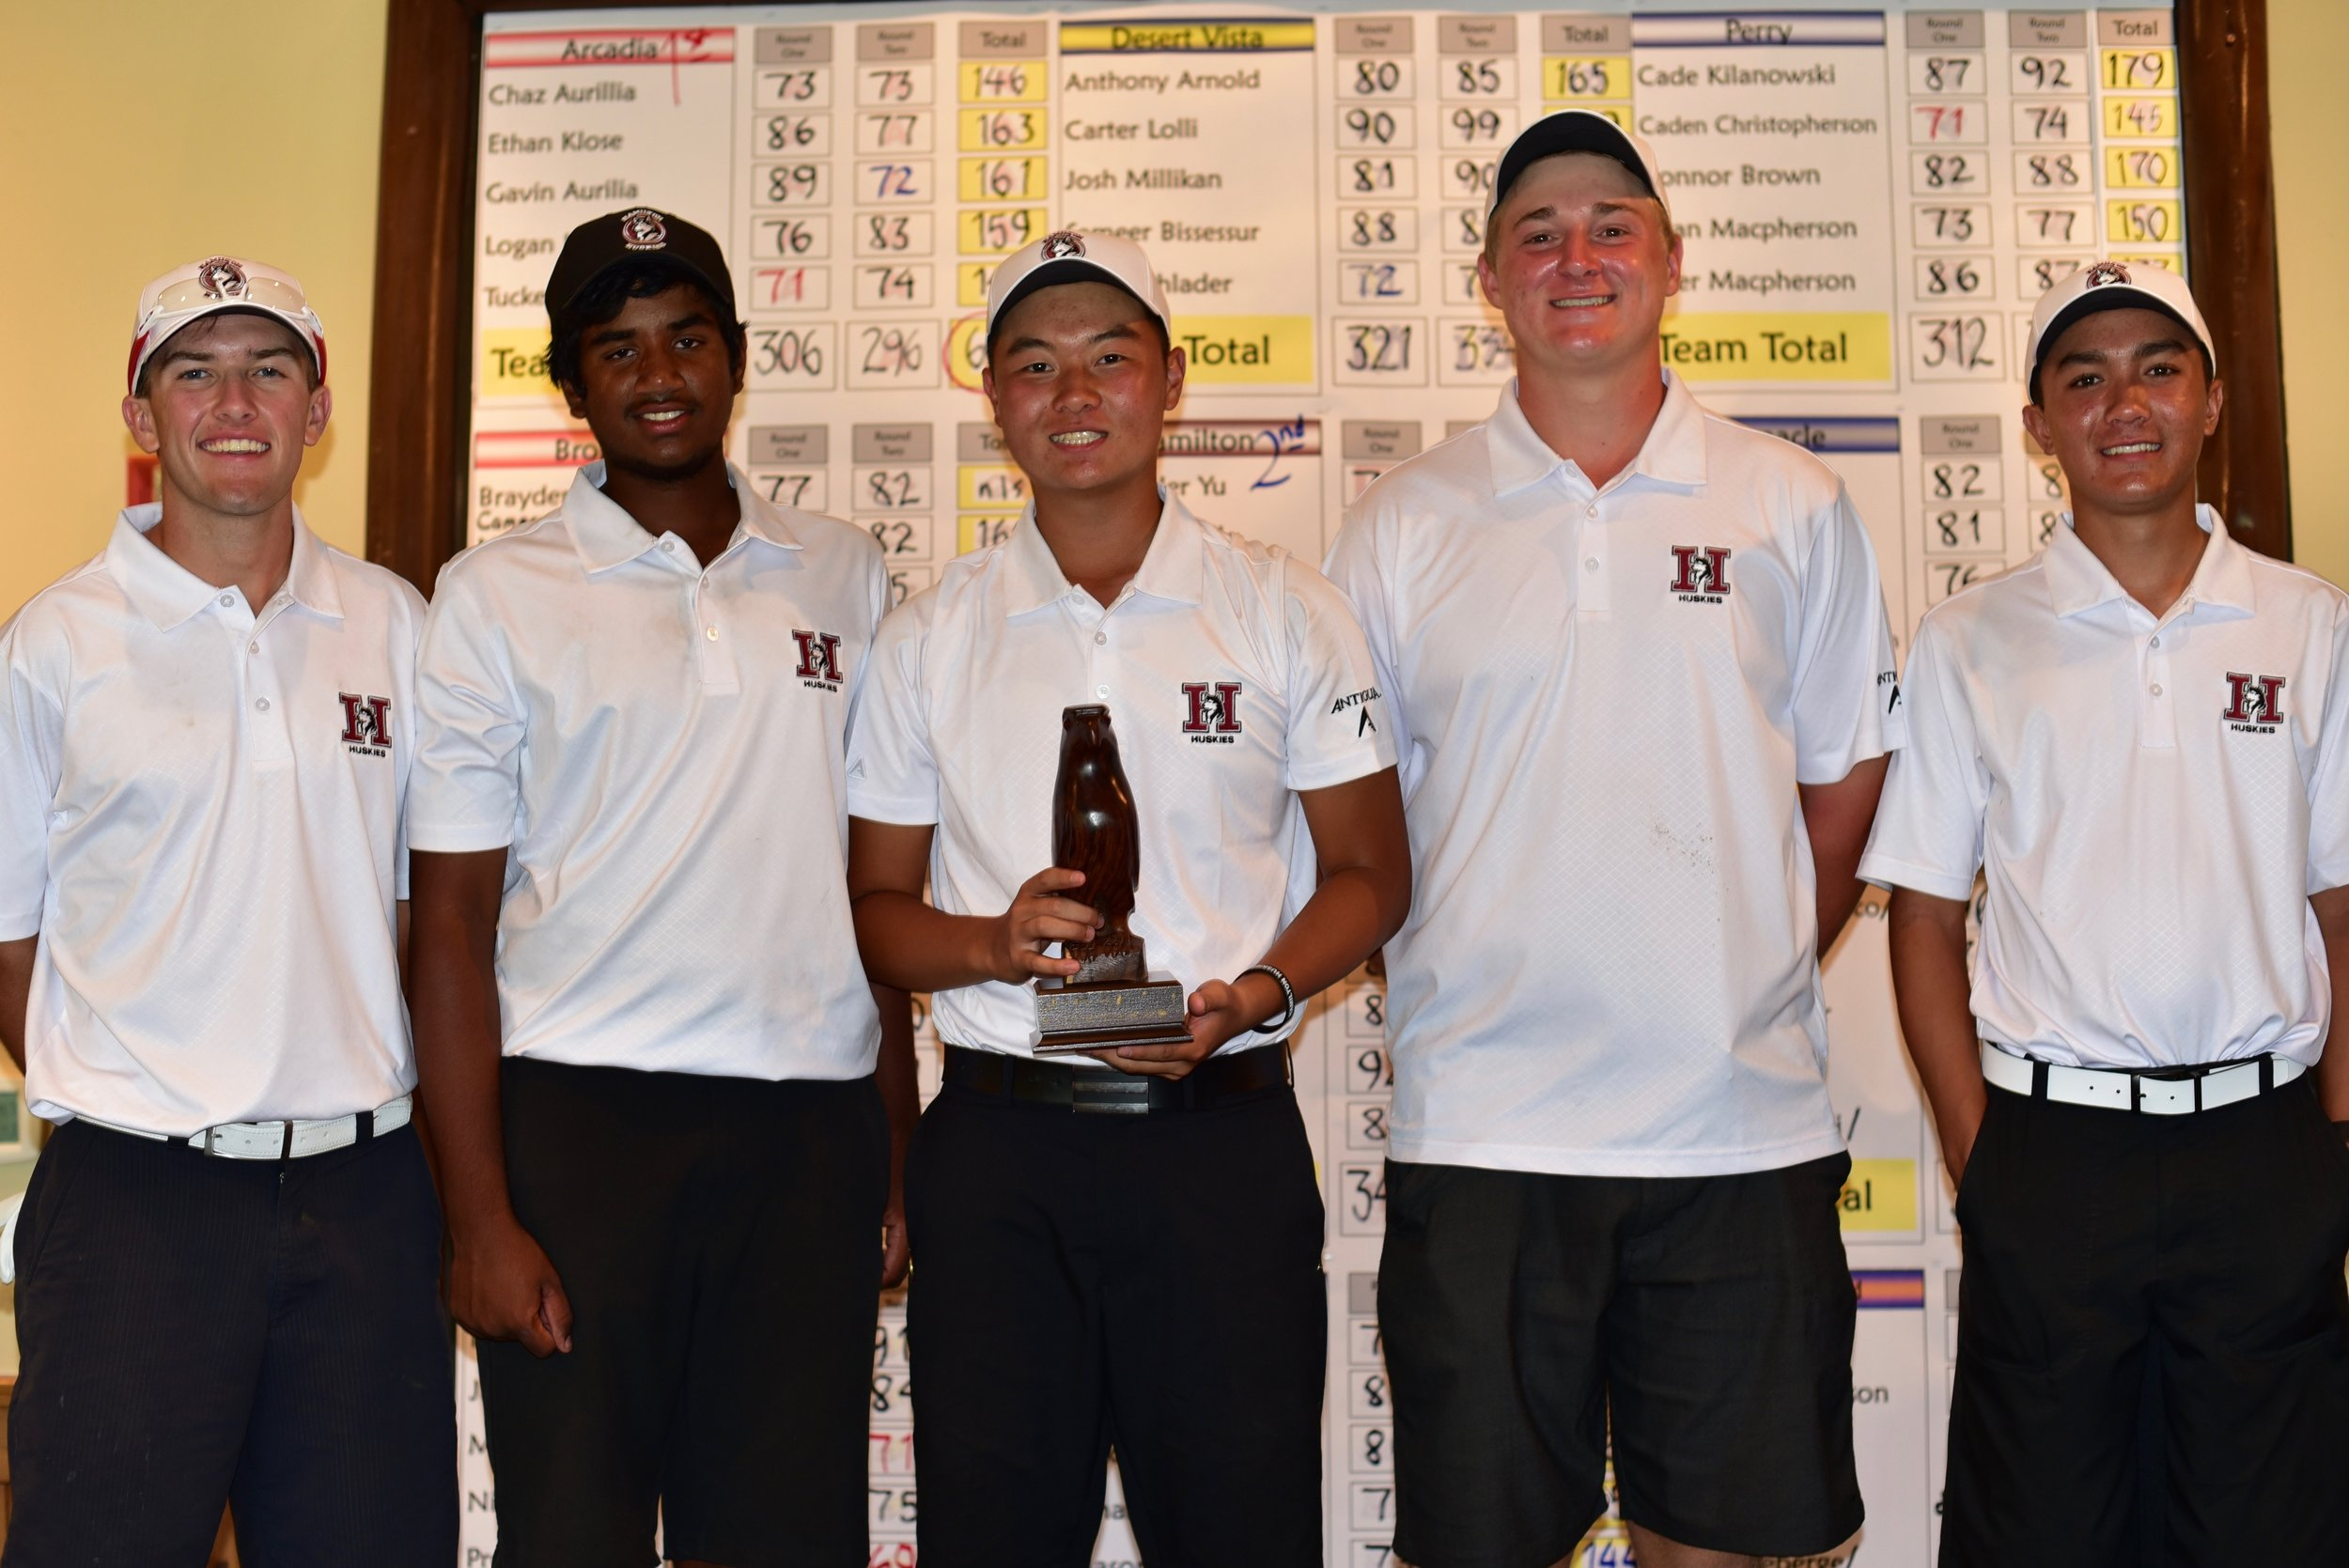 Left to right: Brandon Hill, Mahanth Chirravuri, Alexander Yu, Caden Rice & Johnny Walker  The HHS Boys Golf Team finished in 2nd place at the Brophy Invitational this weekend at Grayhawk Golf Club in Scottsdale. After a slow start in round one, the team roared back on Saturday's second round and passed five teams just to fall one shot short of 1st place Arcadia HS.    The team was led by sophomore Johnny Walker who finished in the top 10 individually with rounds of 74-72. Senior Alexander Yu who fired a second round score of 70 (-2) that included six birdies and freshman Mahanth Chirravuri 73-76 both tied for 11th place. Seniors Brandon Hill (78-84) and Caden Rice (86-79) contributed to the team performance.